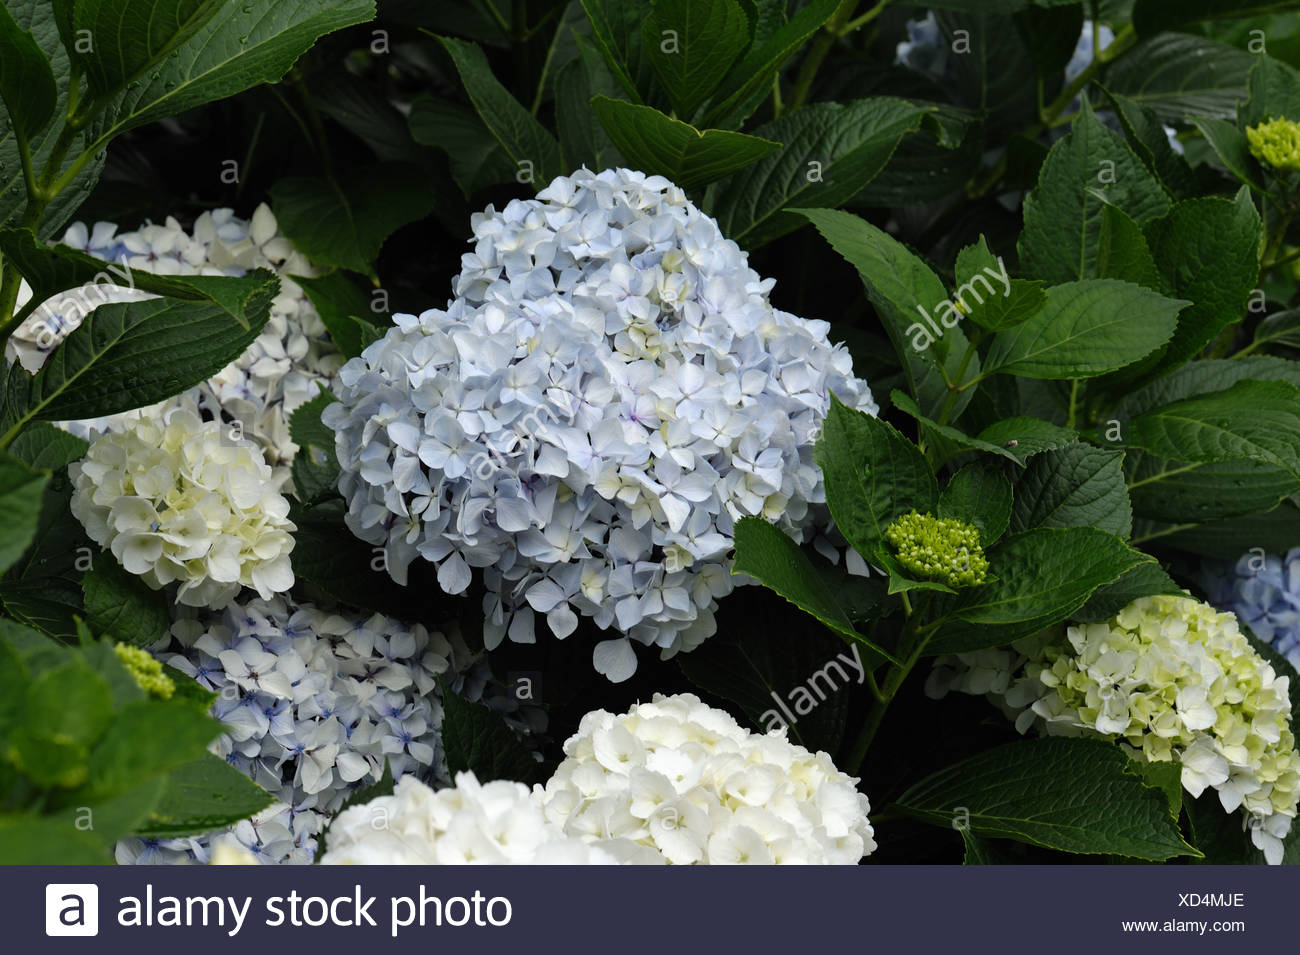 Pale Blue And White Flowers On Hydrangea Macrophylla Inm The